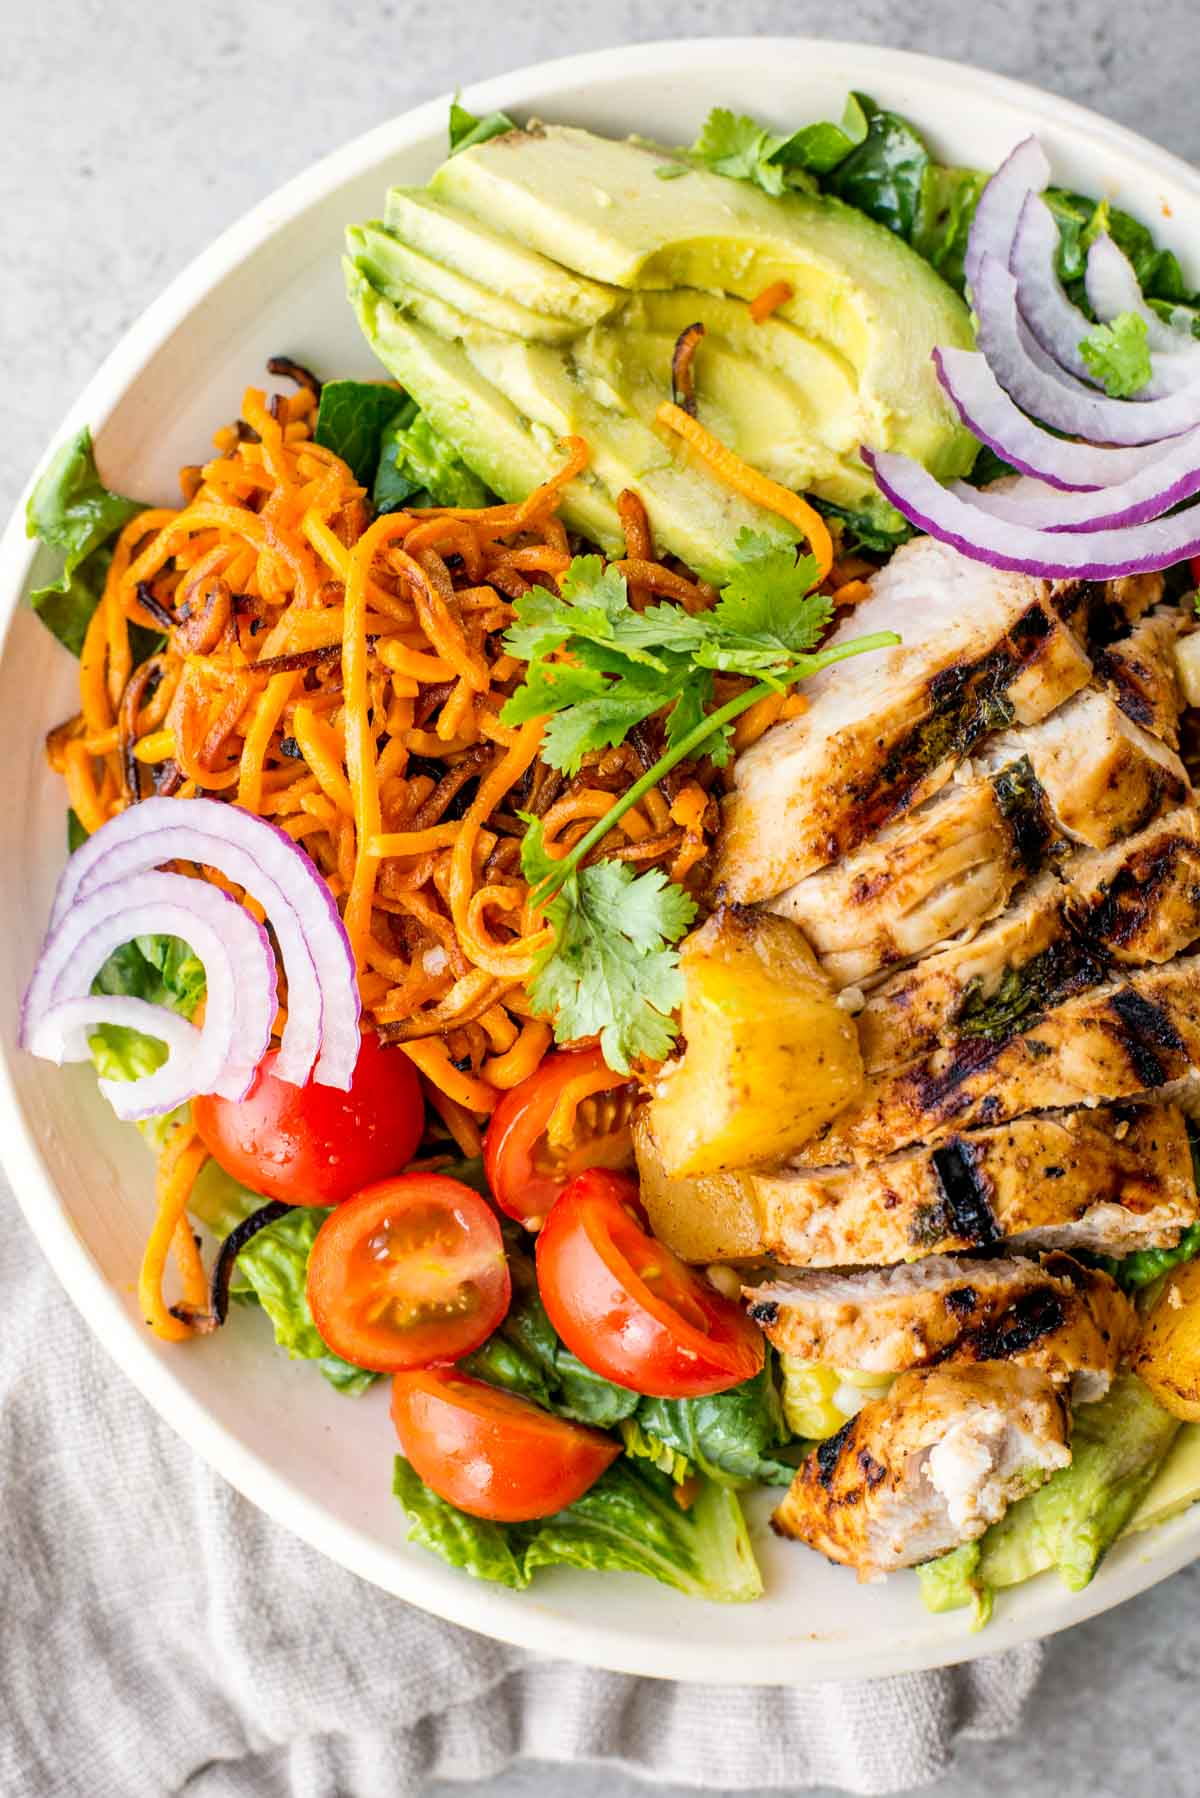 Dinner doesn't have to be complicated and healthy food should be delicious! Here's how to pull off both with this 15 minute meal!